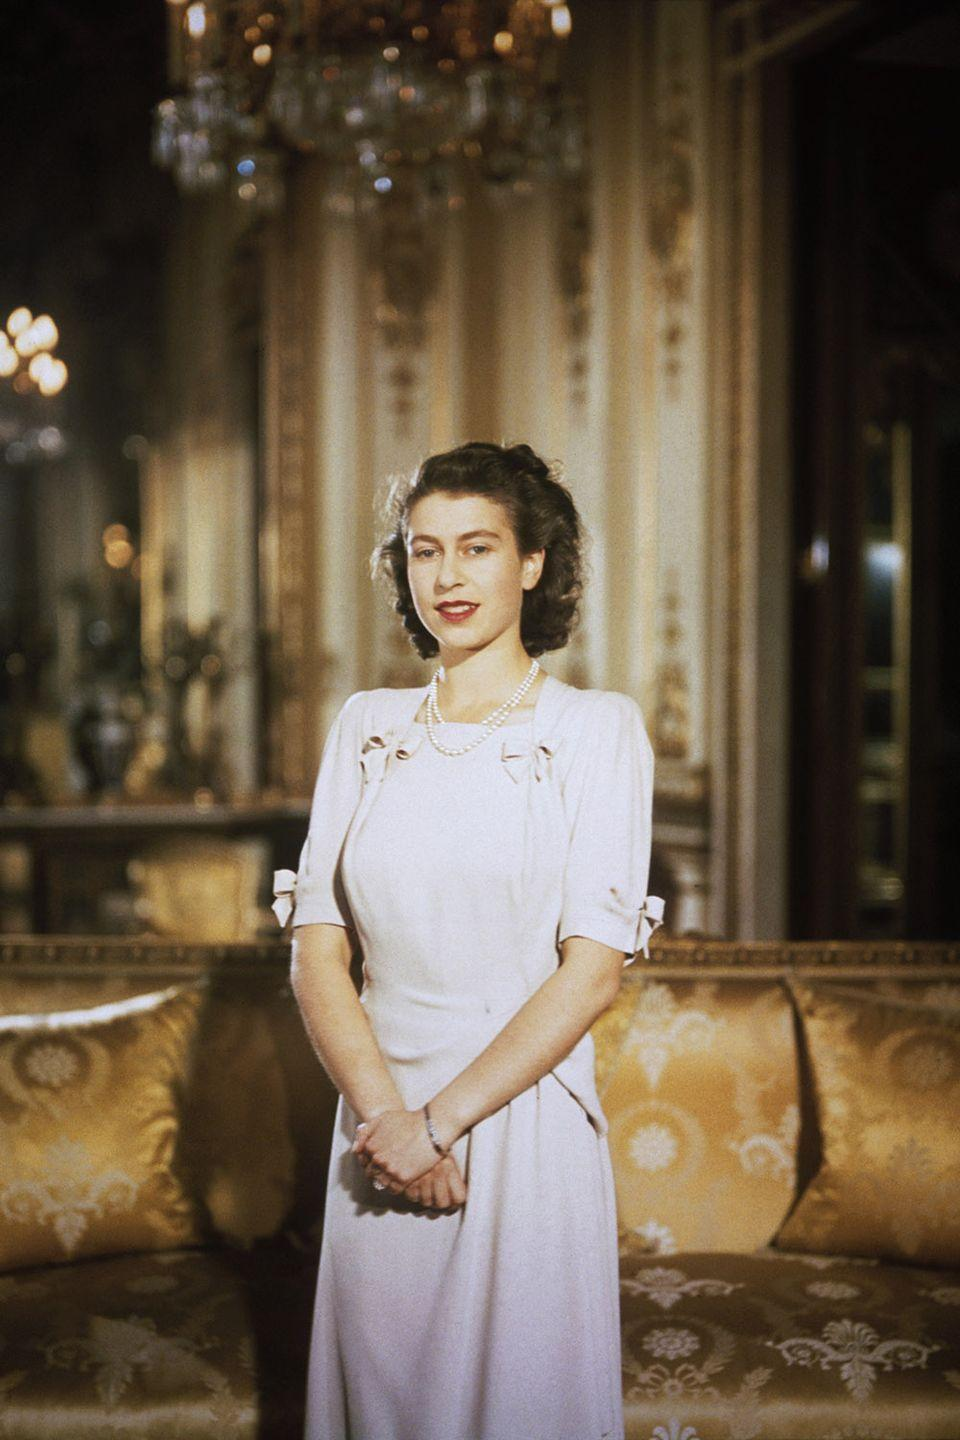 <p>Princess Elizabeth looked lady-like and regal in her soft pink dress, simple jewelry, and curled hair for an engagement photoshoot with Prince Philip.</p>